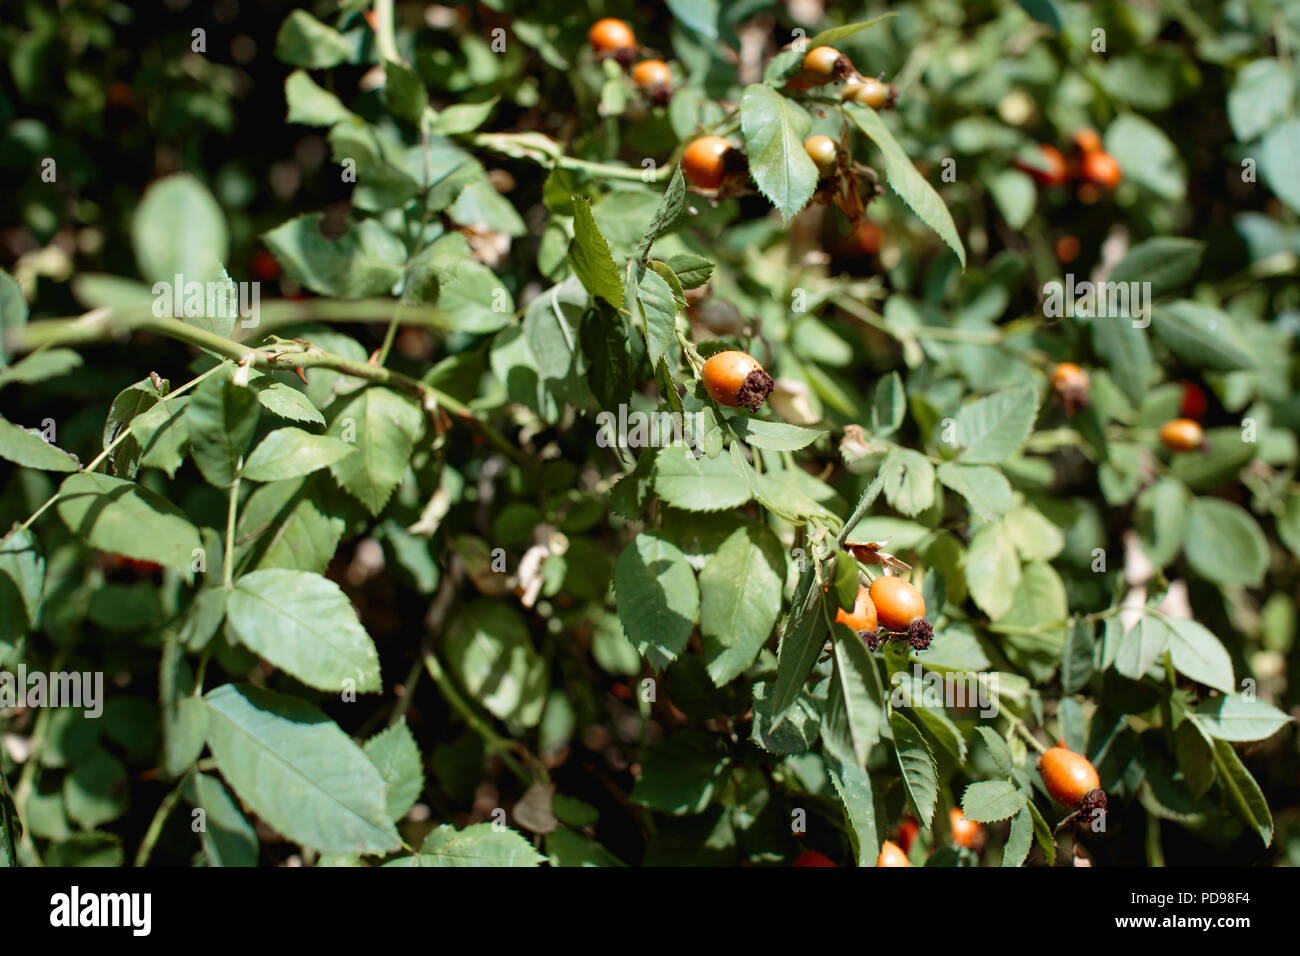 Orange rosehips growing on a bush, as they ripen they turn red & will be ready to pick after the first frost. Traditional ingredient in rose hip jelly - Stock Image